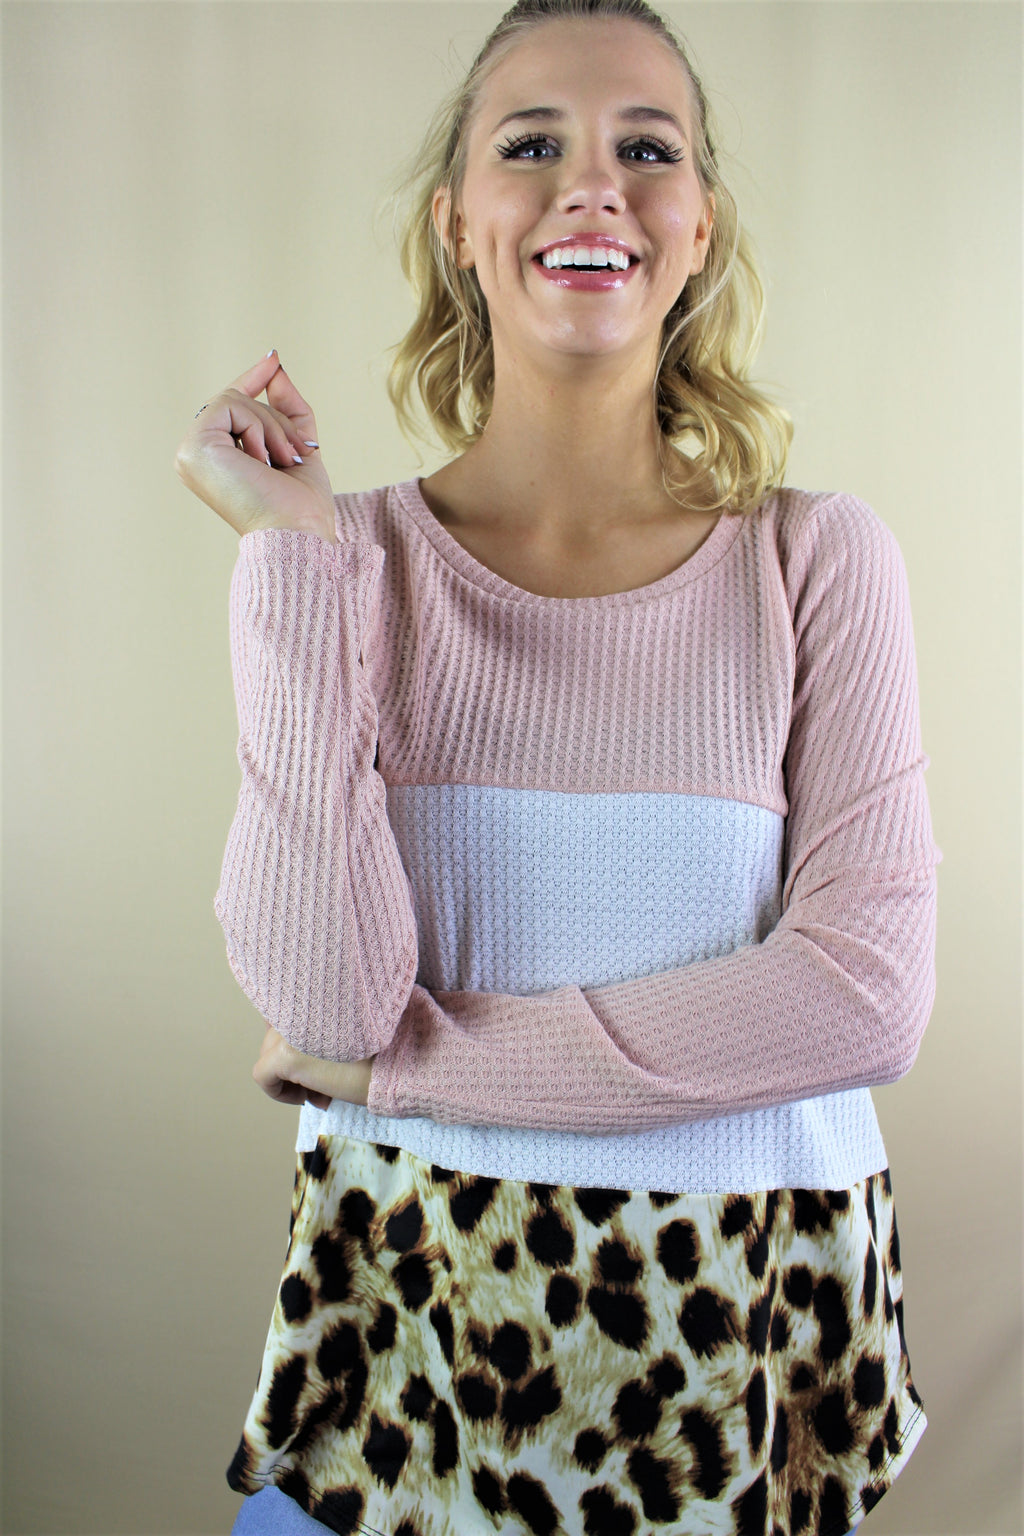 Women's Long Sleeve Color Block Top with Animal Print